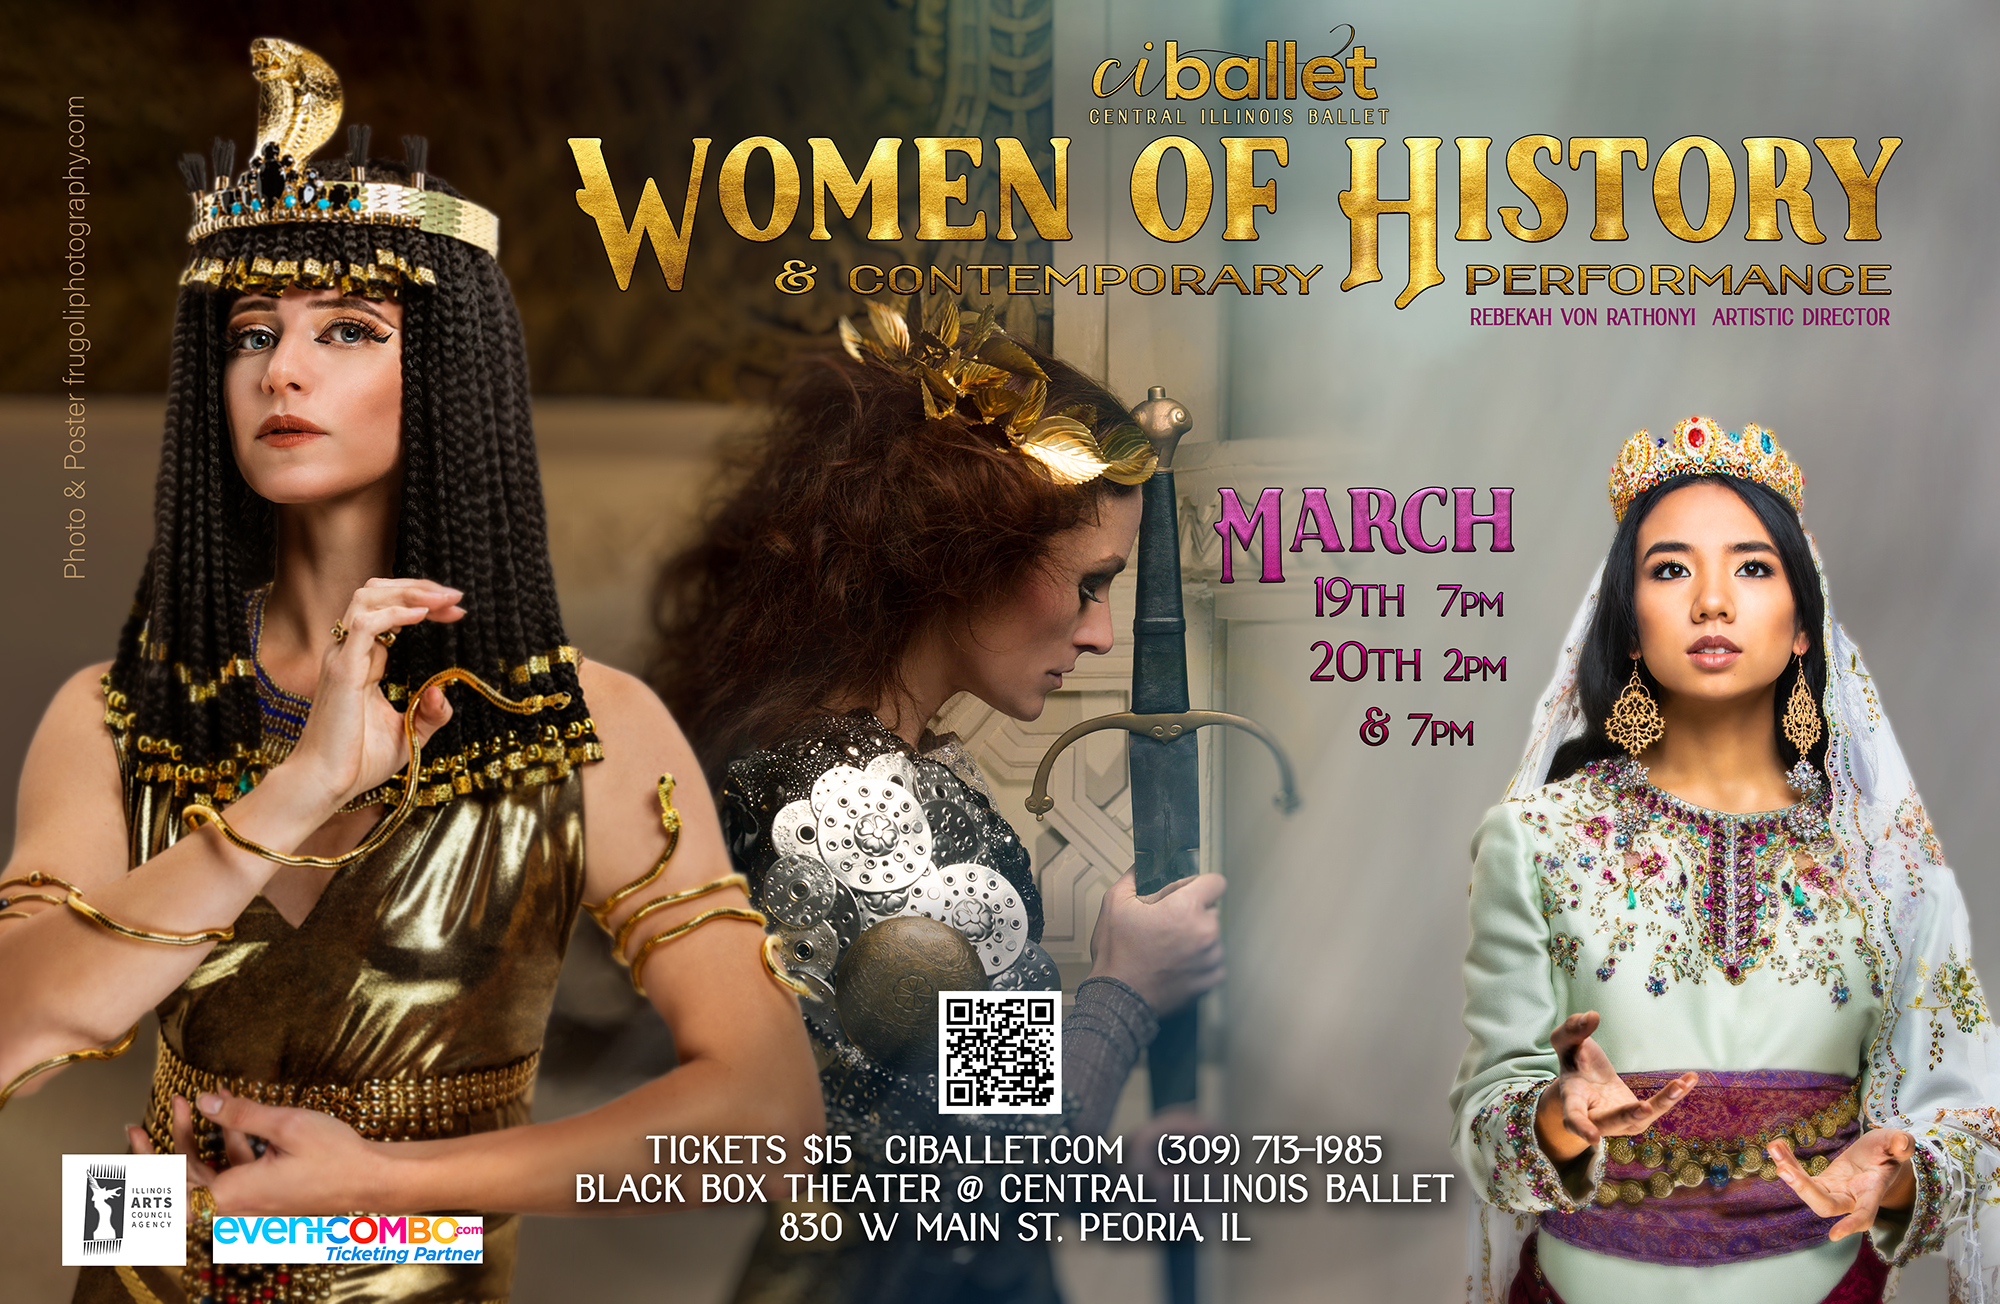 Women of History and Contemporary Performance